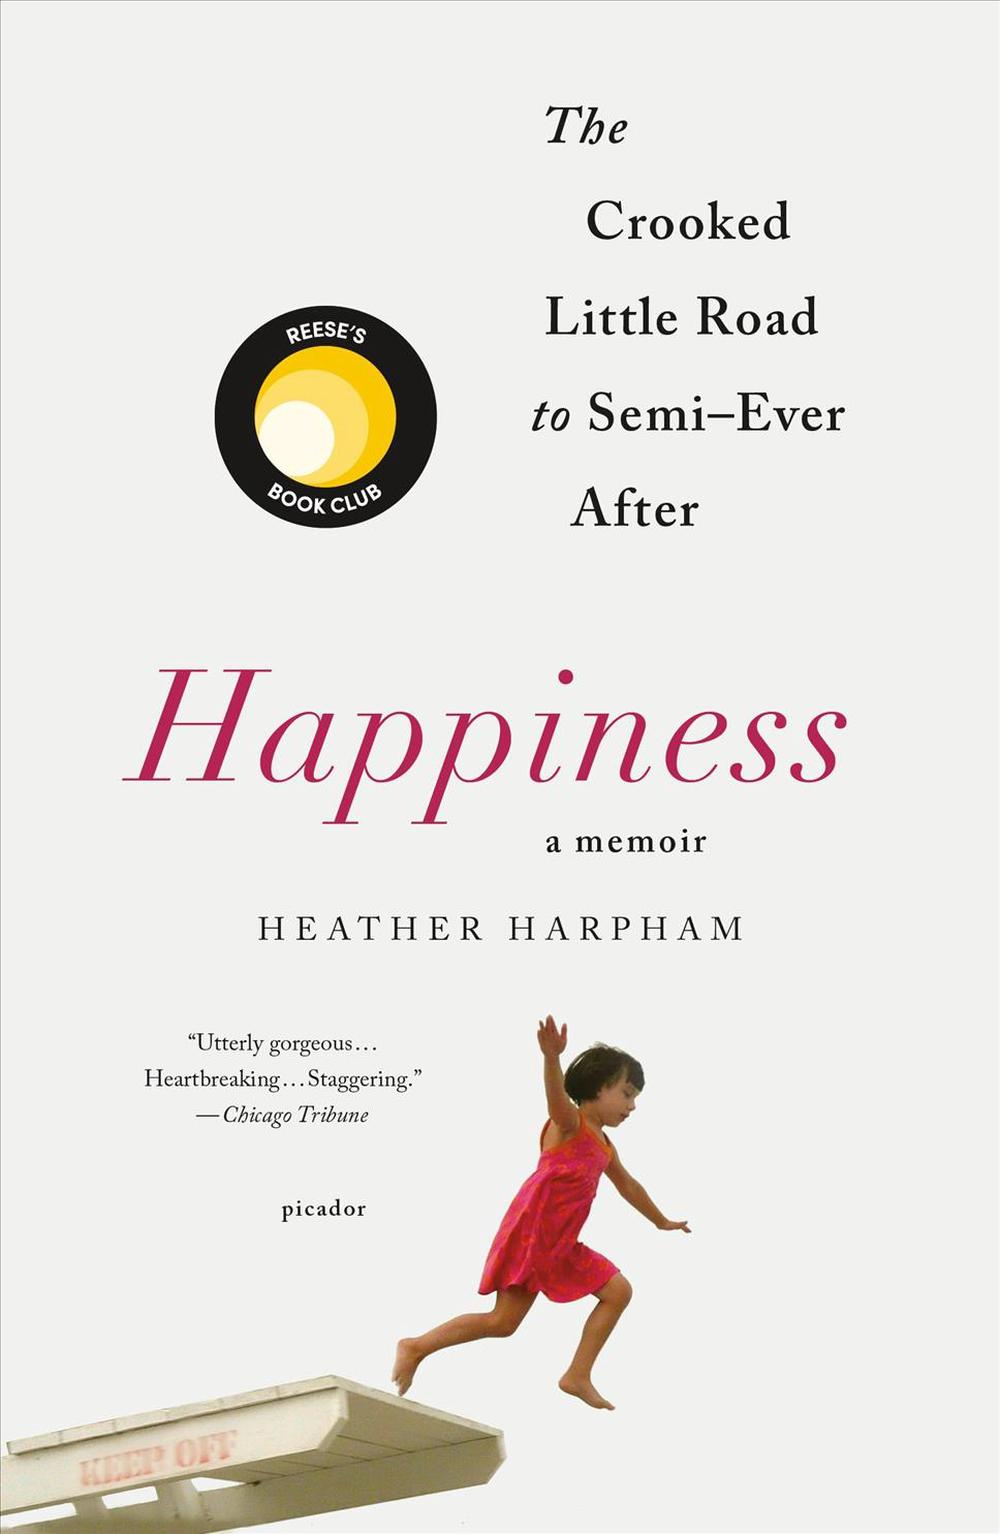 Happiness: A Memoir: How to Build a Family Out of True Love and Spare Parts by Heather Harpham, ISBN: 9781250301147